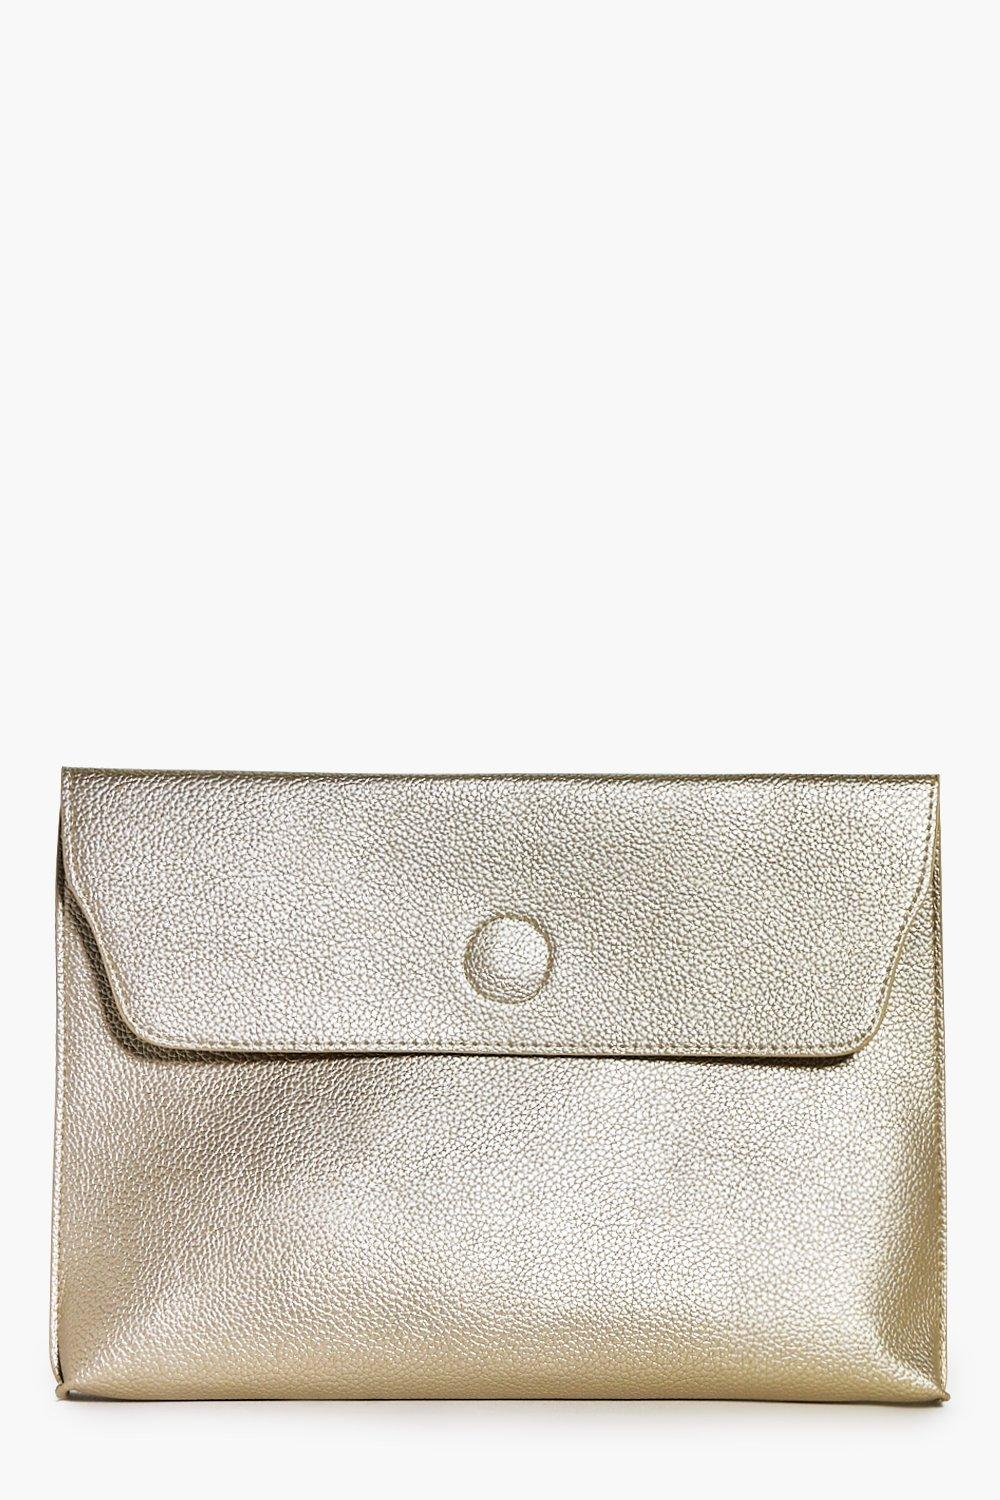 Lena Oversized Metallic Clutch Bag